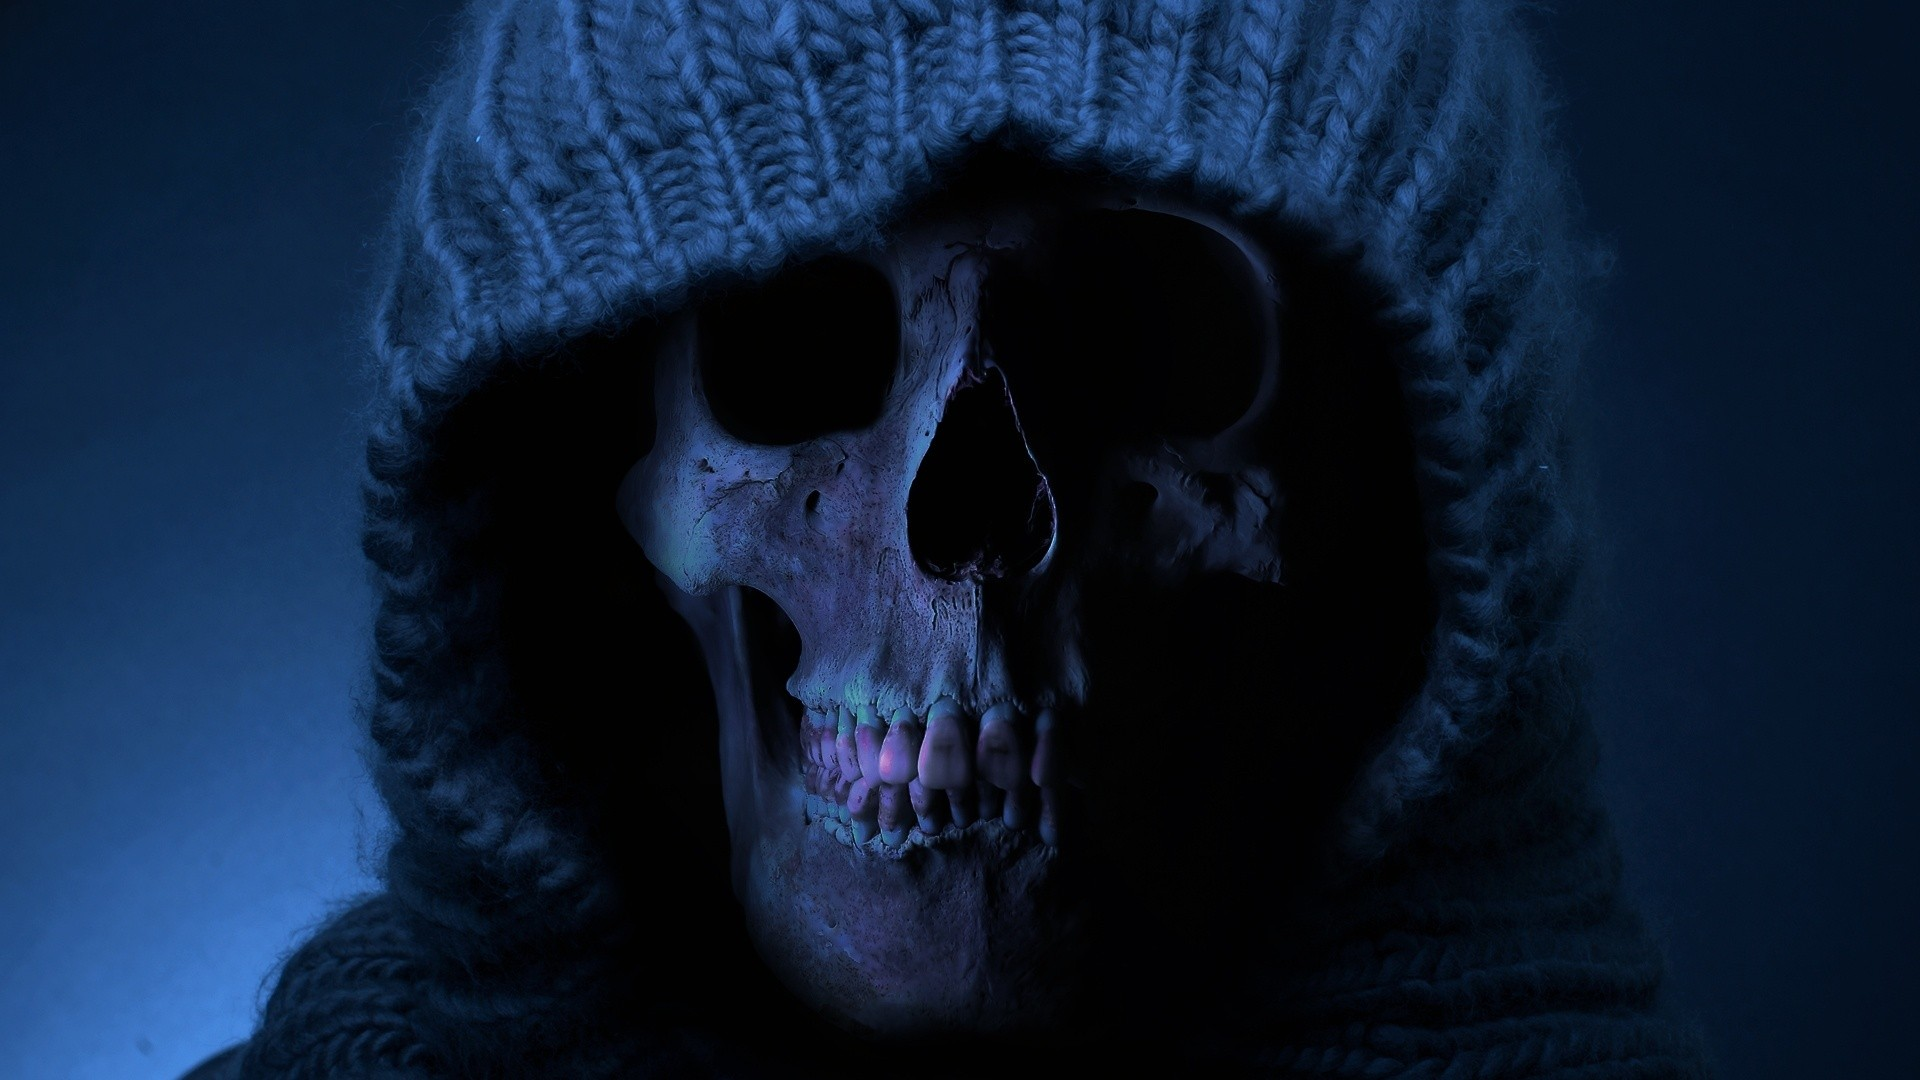 skull wallpaper for windows 7 - photo #15